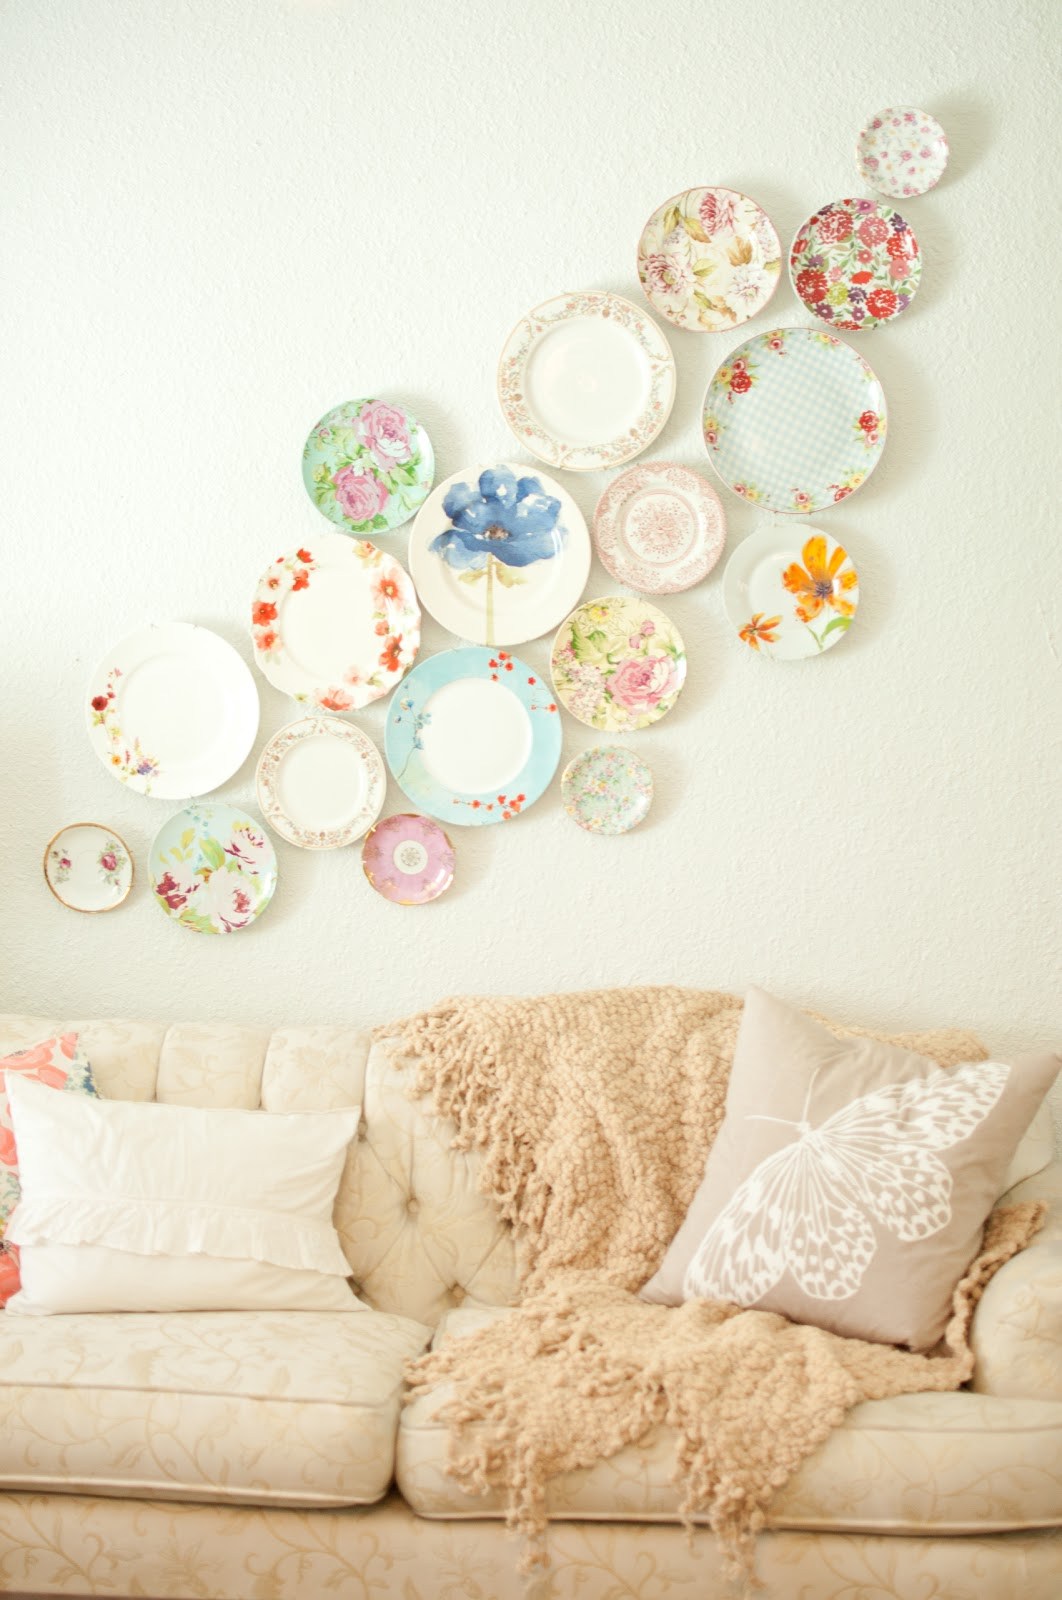 Decorating with Plates & Domestic Fashionista: Decorating with Plates